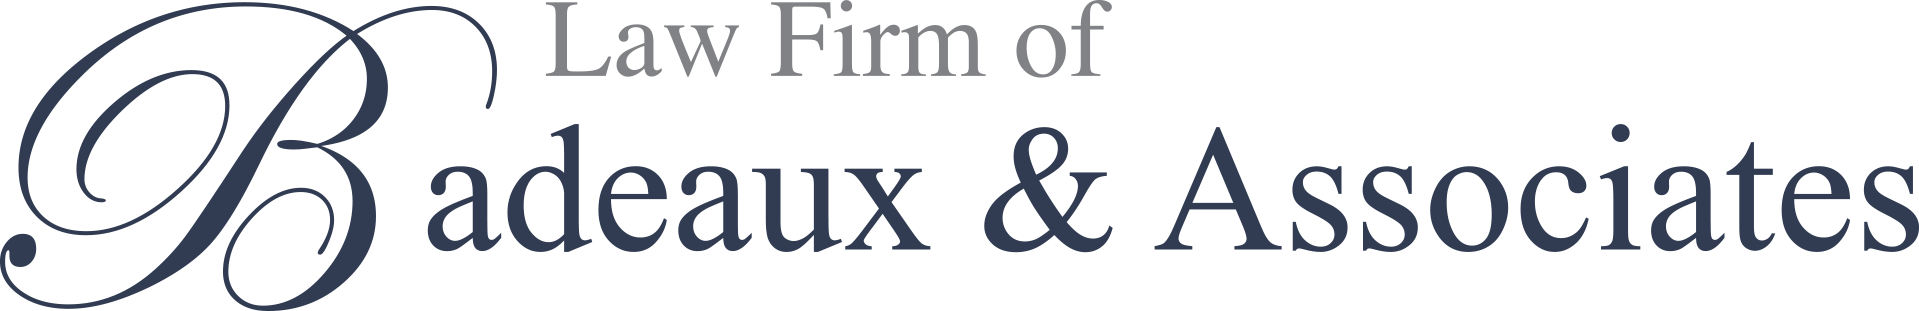 Law Firm of Badeaux & Associates